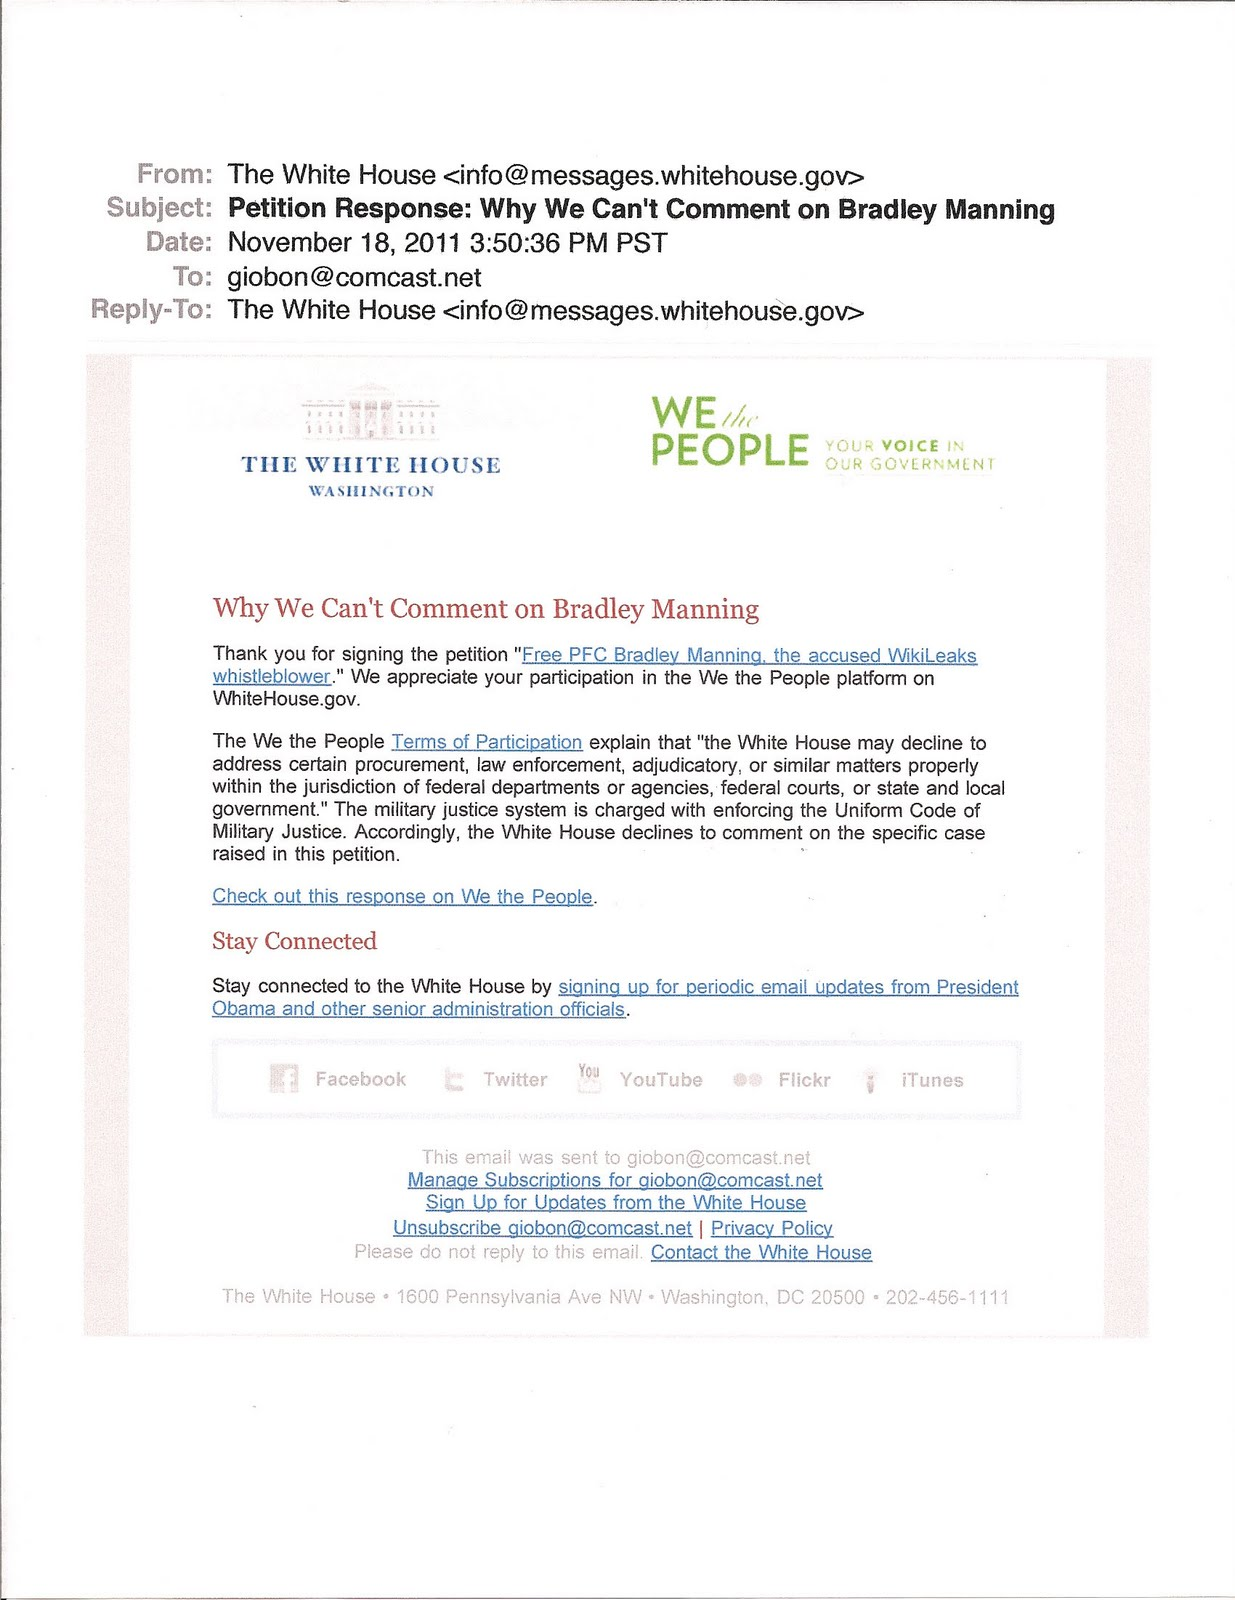 BAUAW Newsletter: 12/25/2011 - 01/01/2012